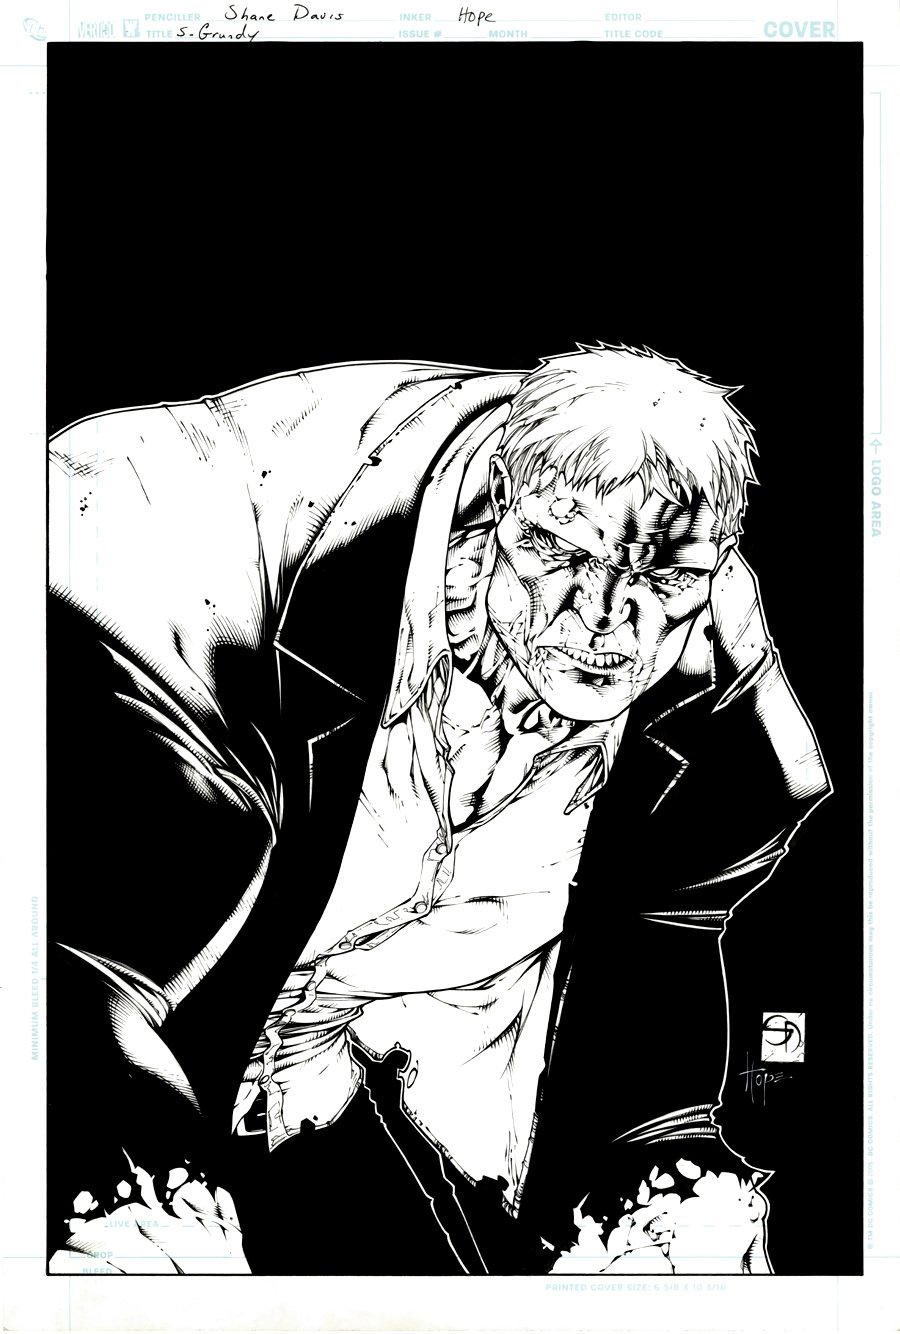 Faces of Evil: Solomon Grundy #1 Cover (2008)